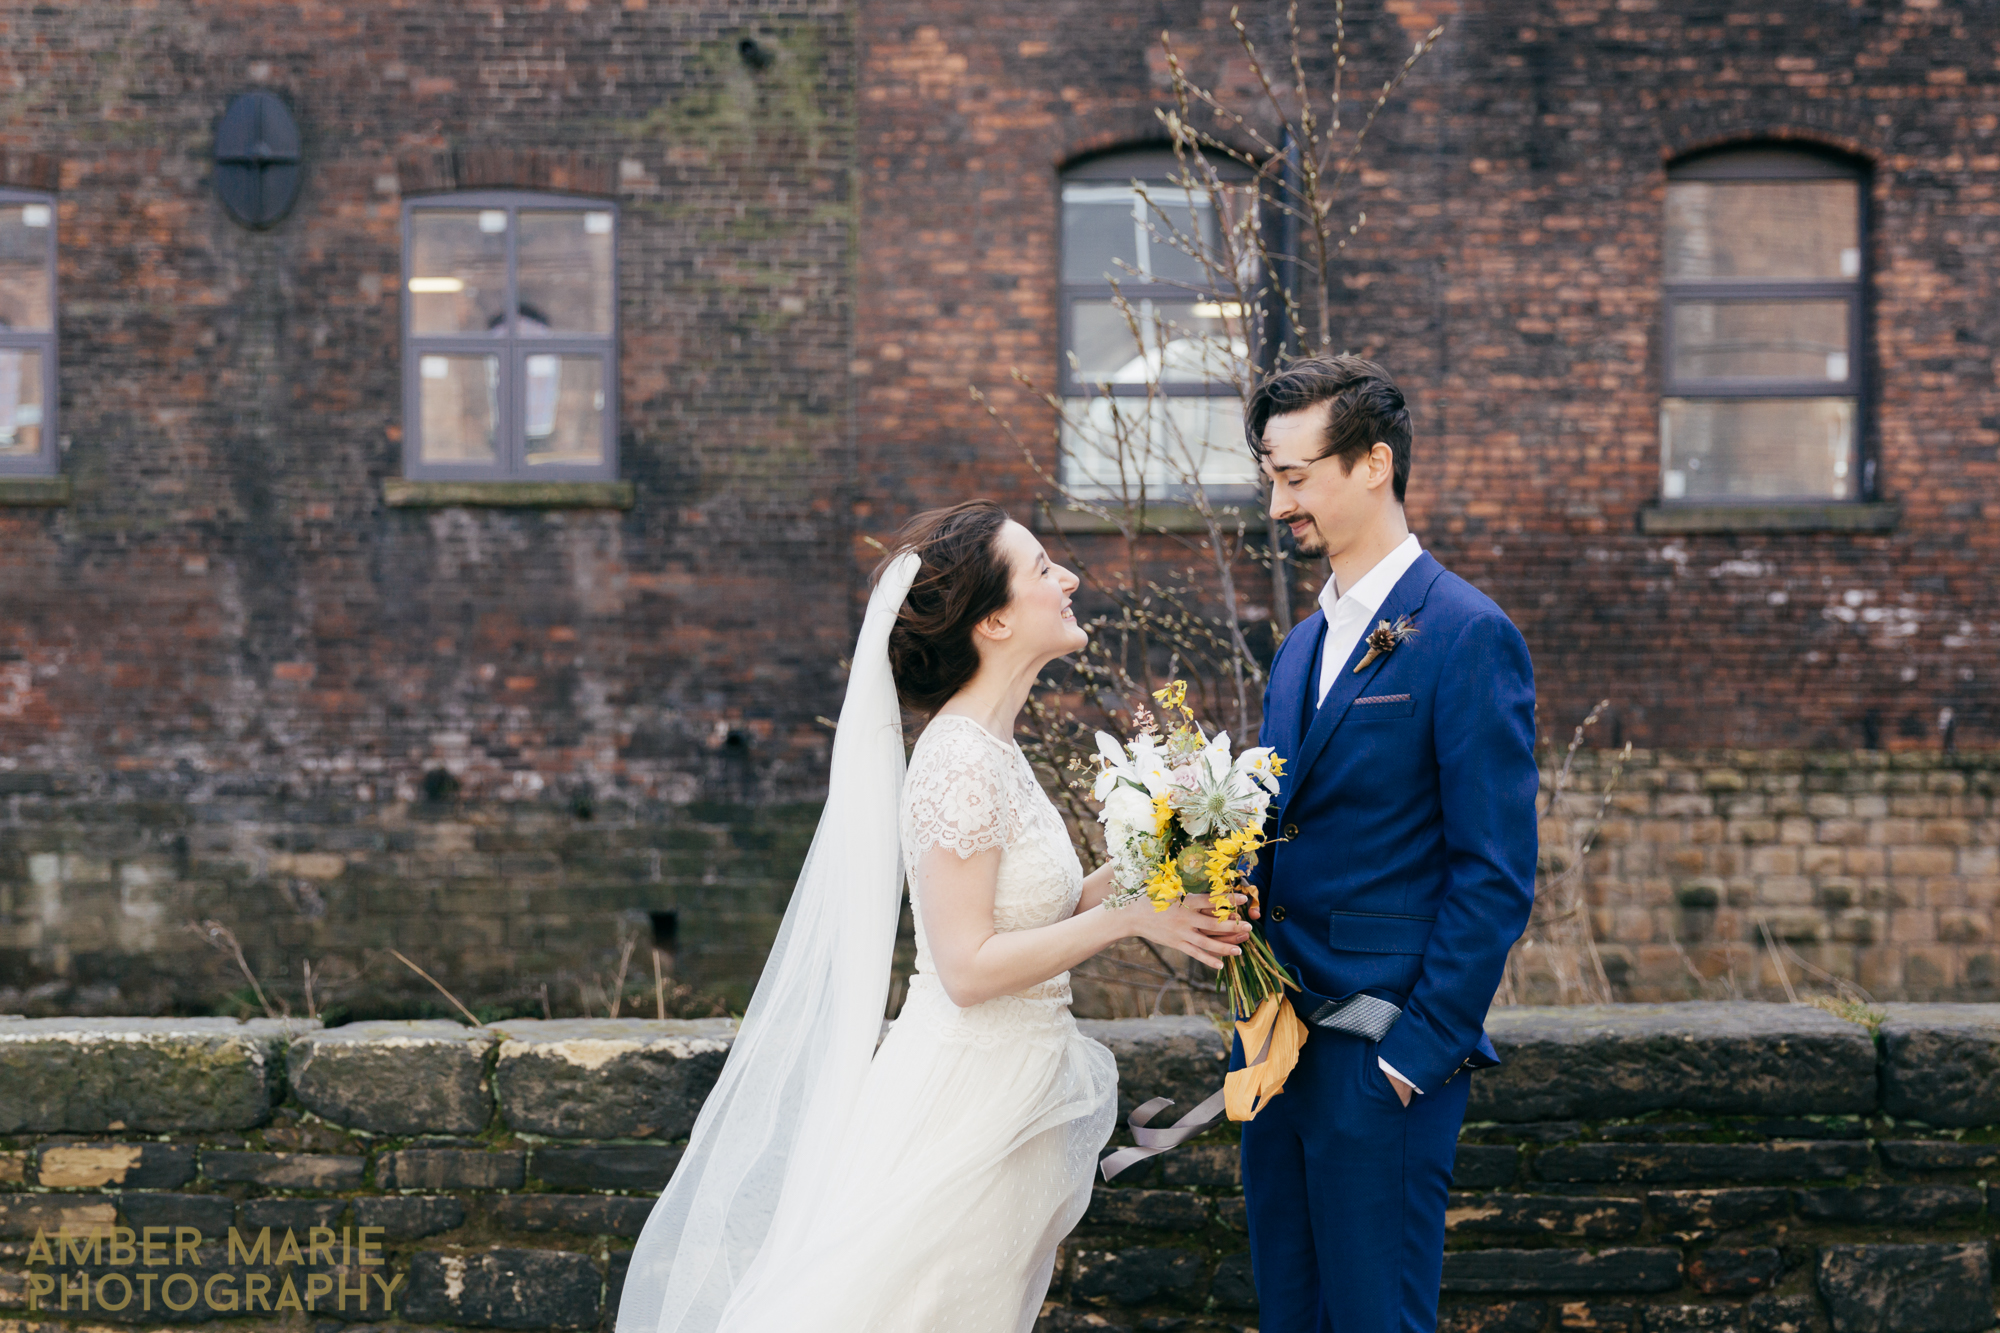 creative and quirky wedding photography leeds